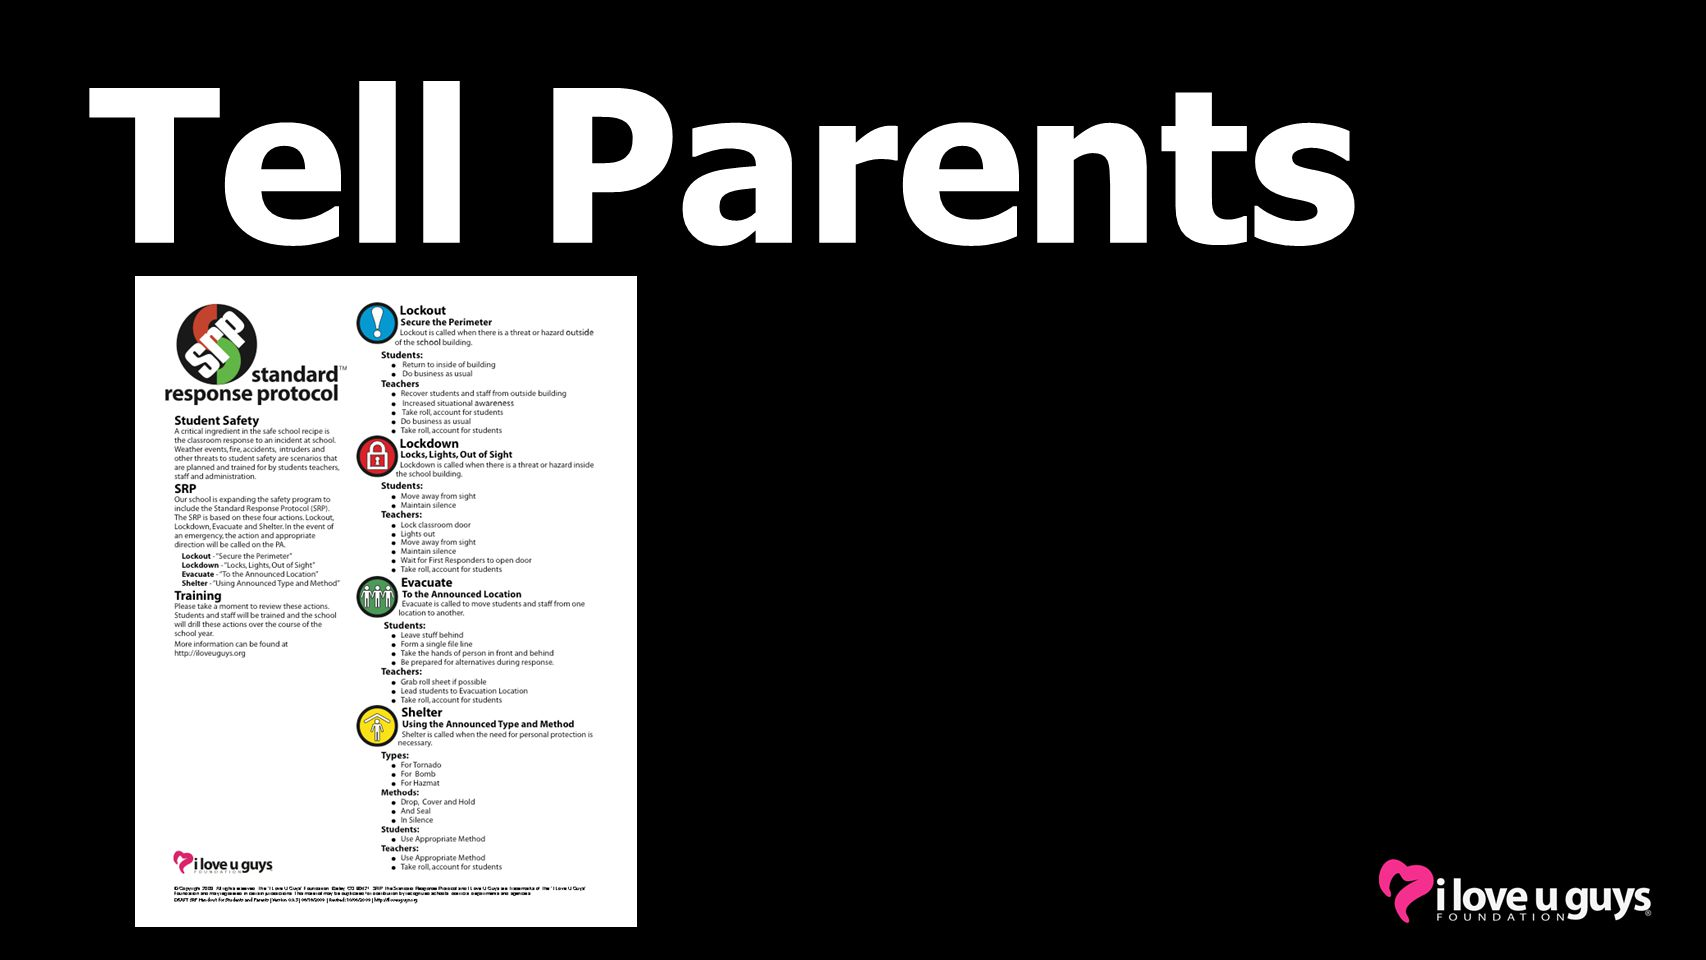 Tell Parents You've received this info sheet.